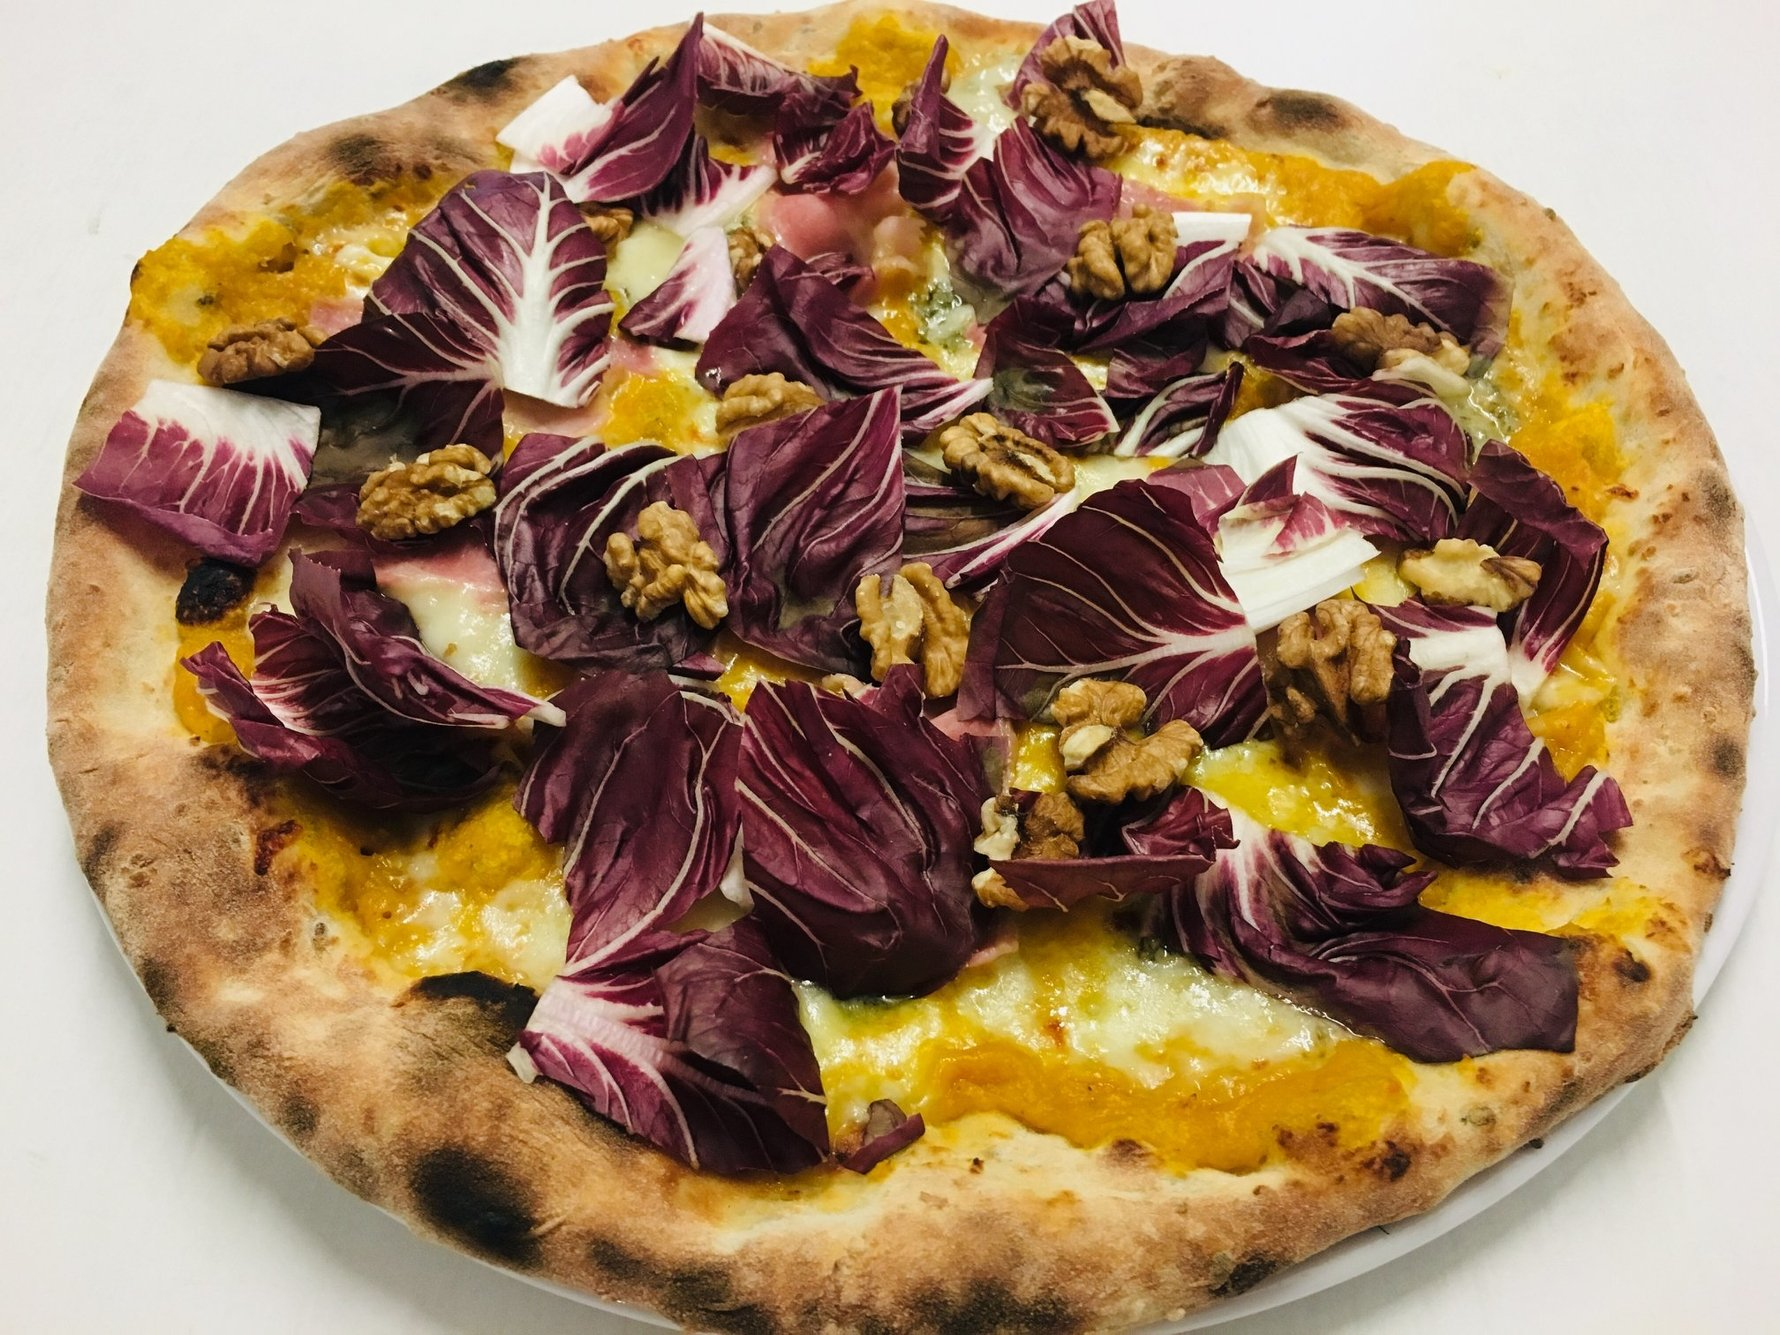 One of the specialty pizza's at Capriccio